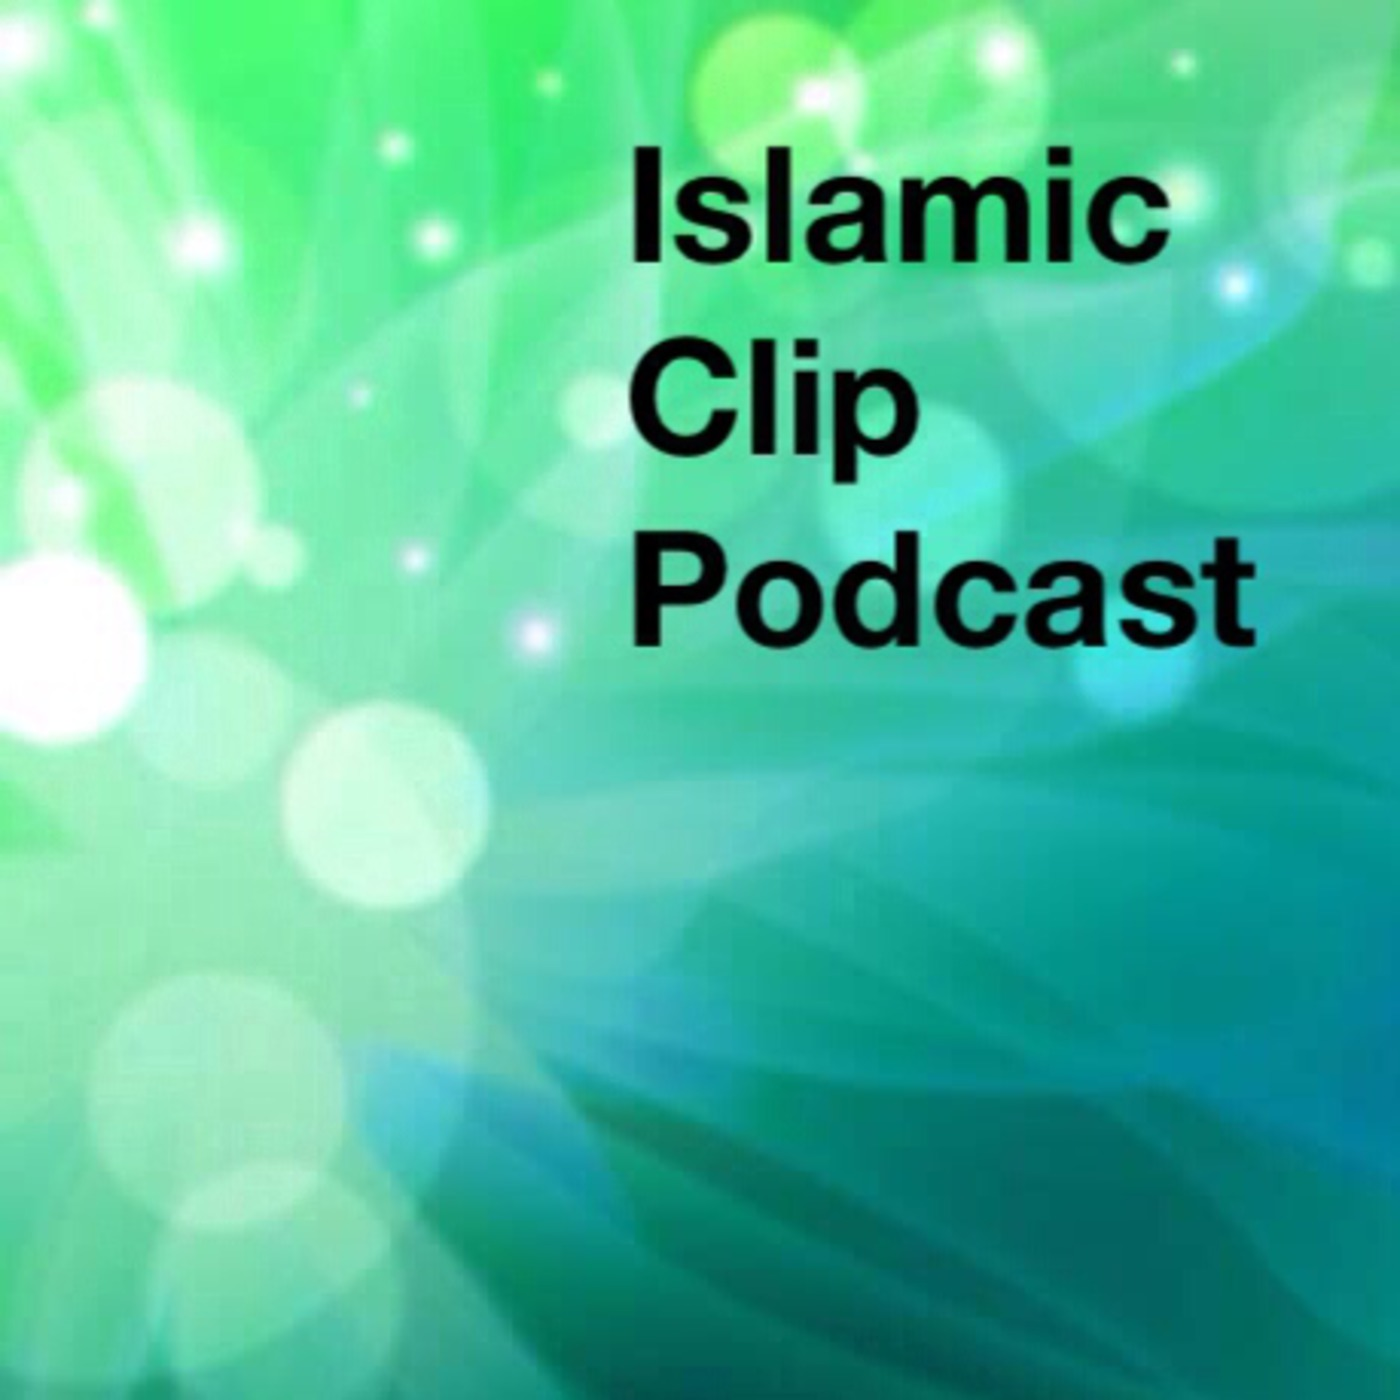 Islamic Clip Podcast